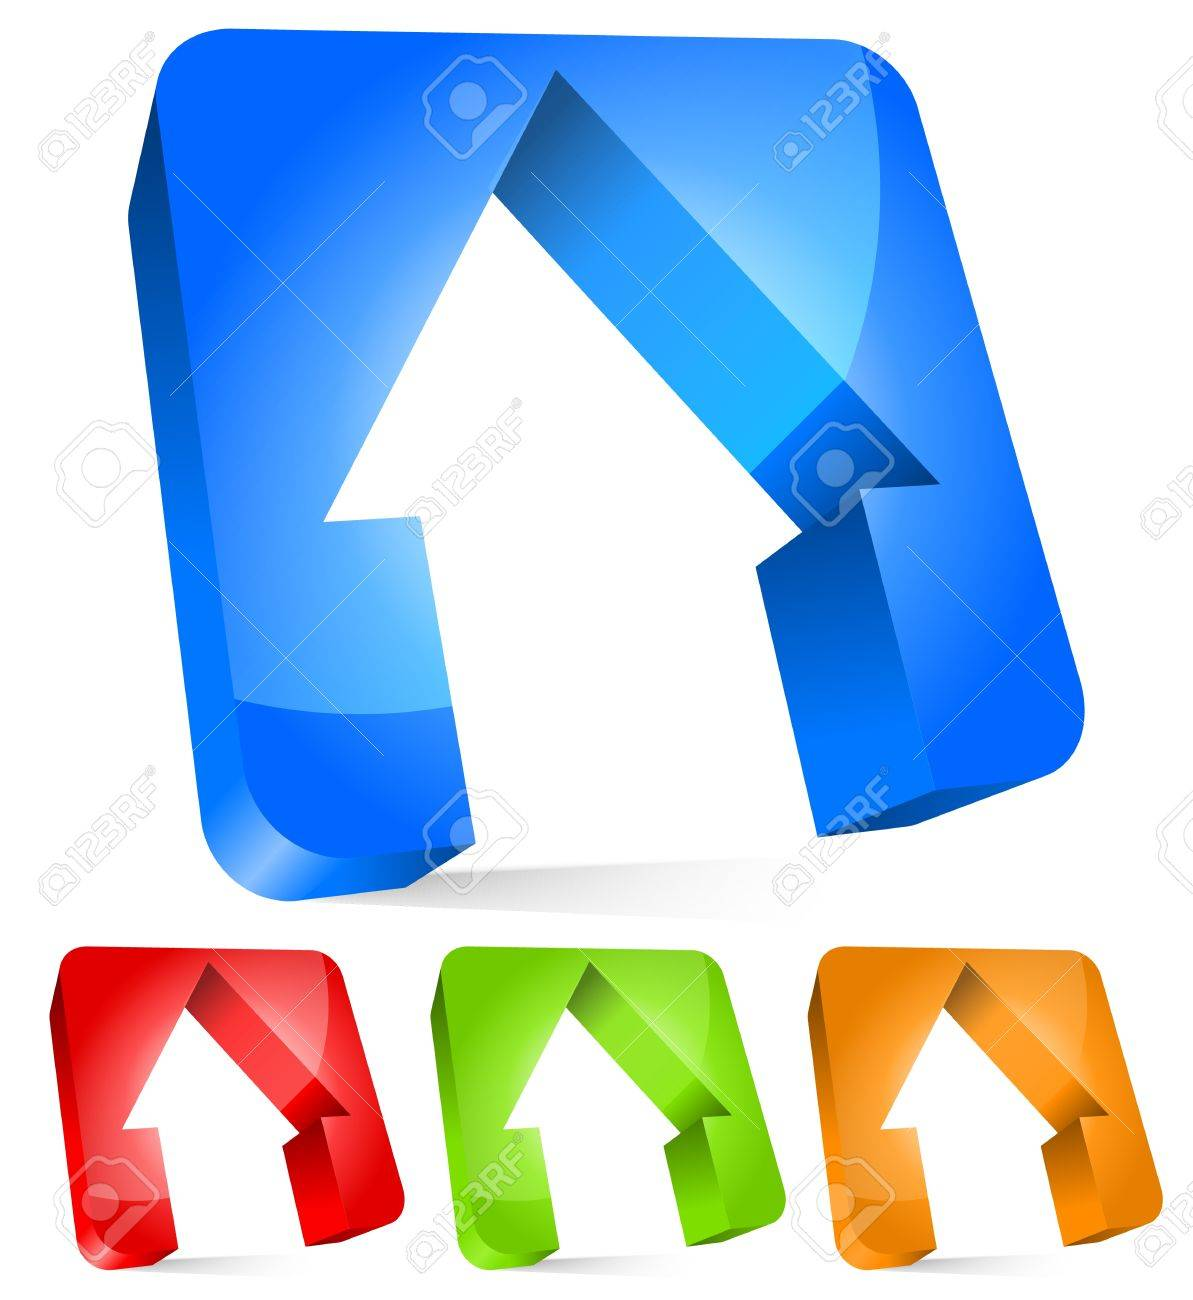 3d houses cut from rounded rectangles, house, home, real estate concepts Stock Vector - 20961512